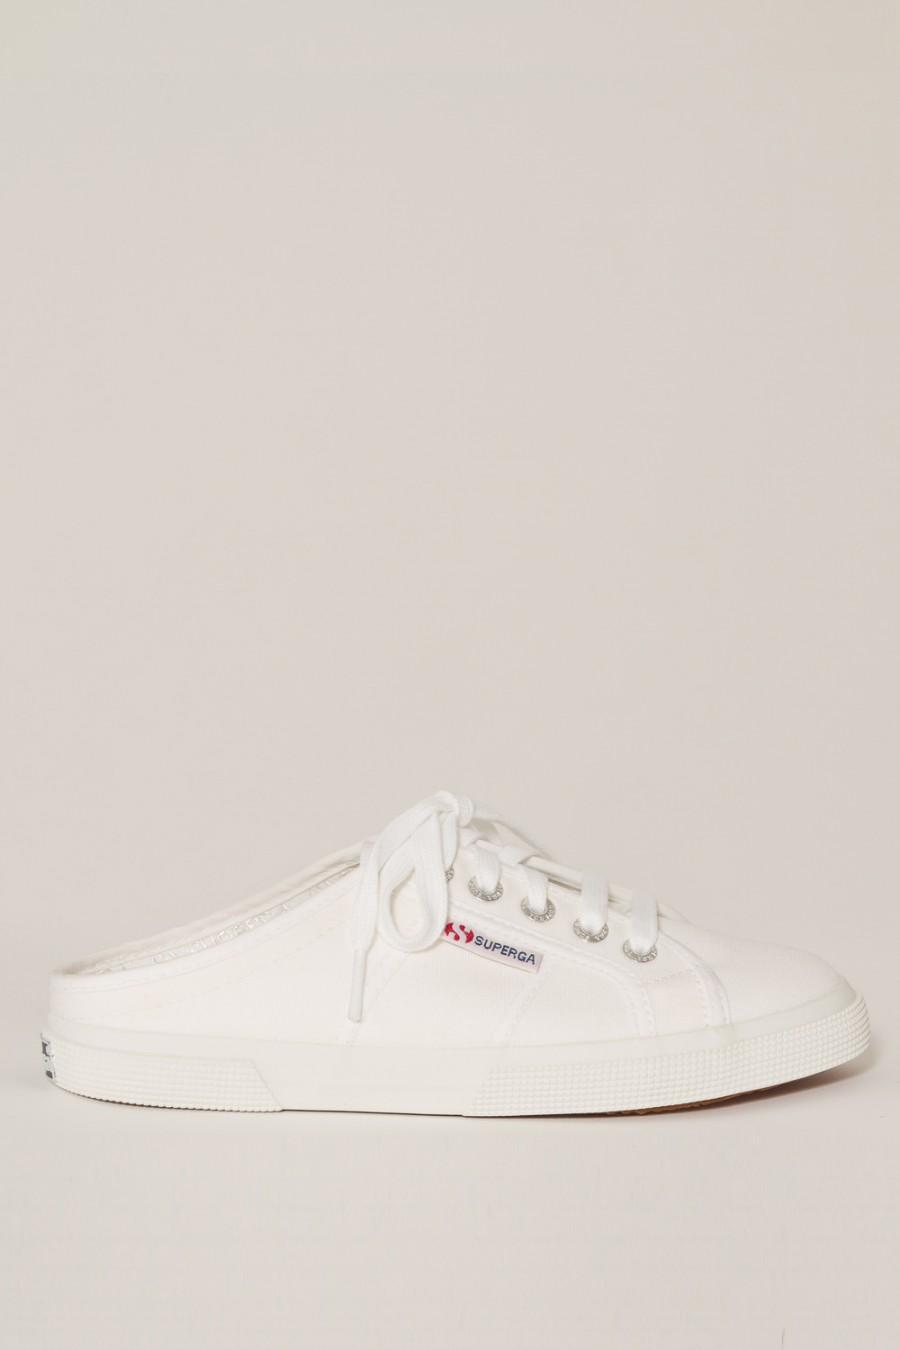 sale shop for free shipping amazon Superga® 2288 Mule sneakers clearance from china C9ULYrvRUJ